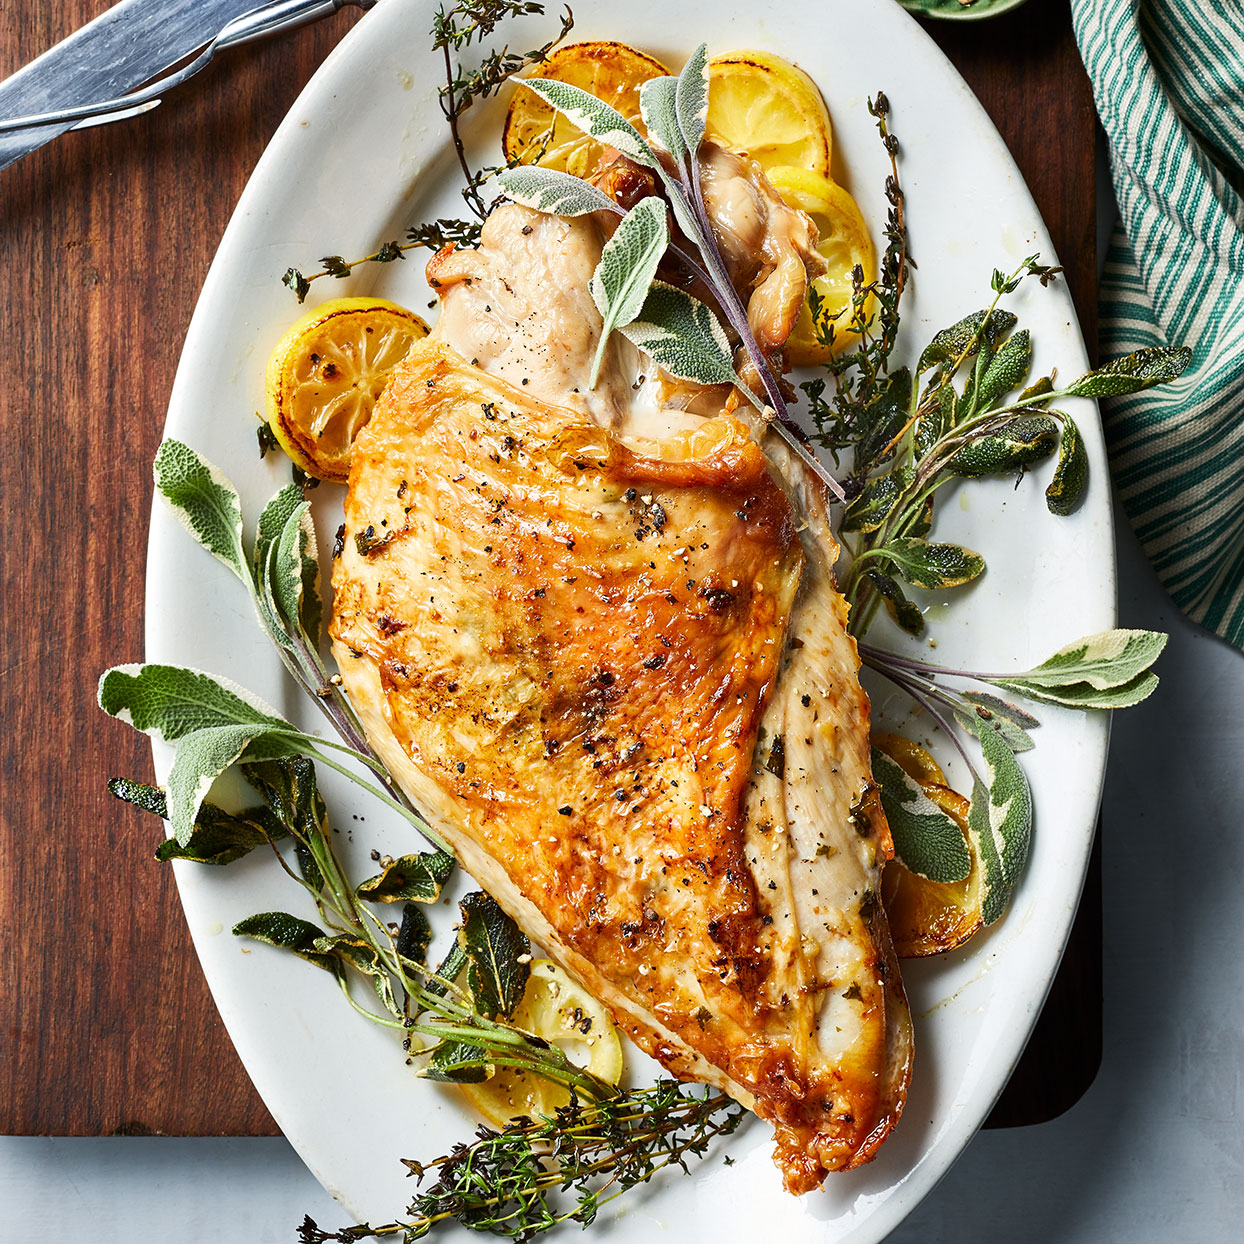 Bone-in, skin-on turkey breasts, also called split breasts, are inexpensive, flavorful, and nice for (just enough) leftovers. Try this any time of year!